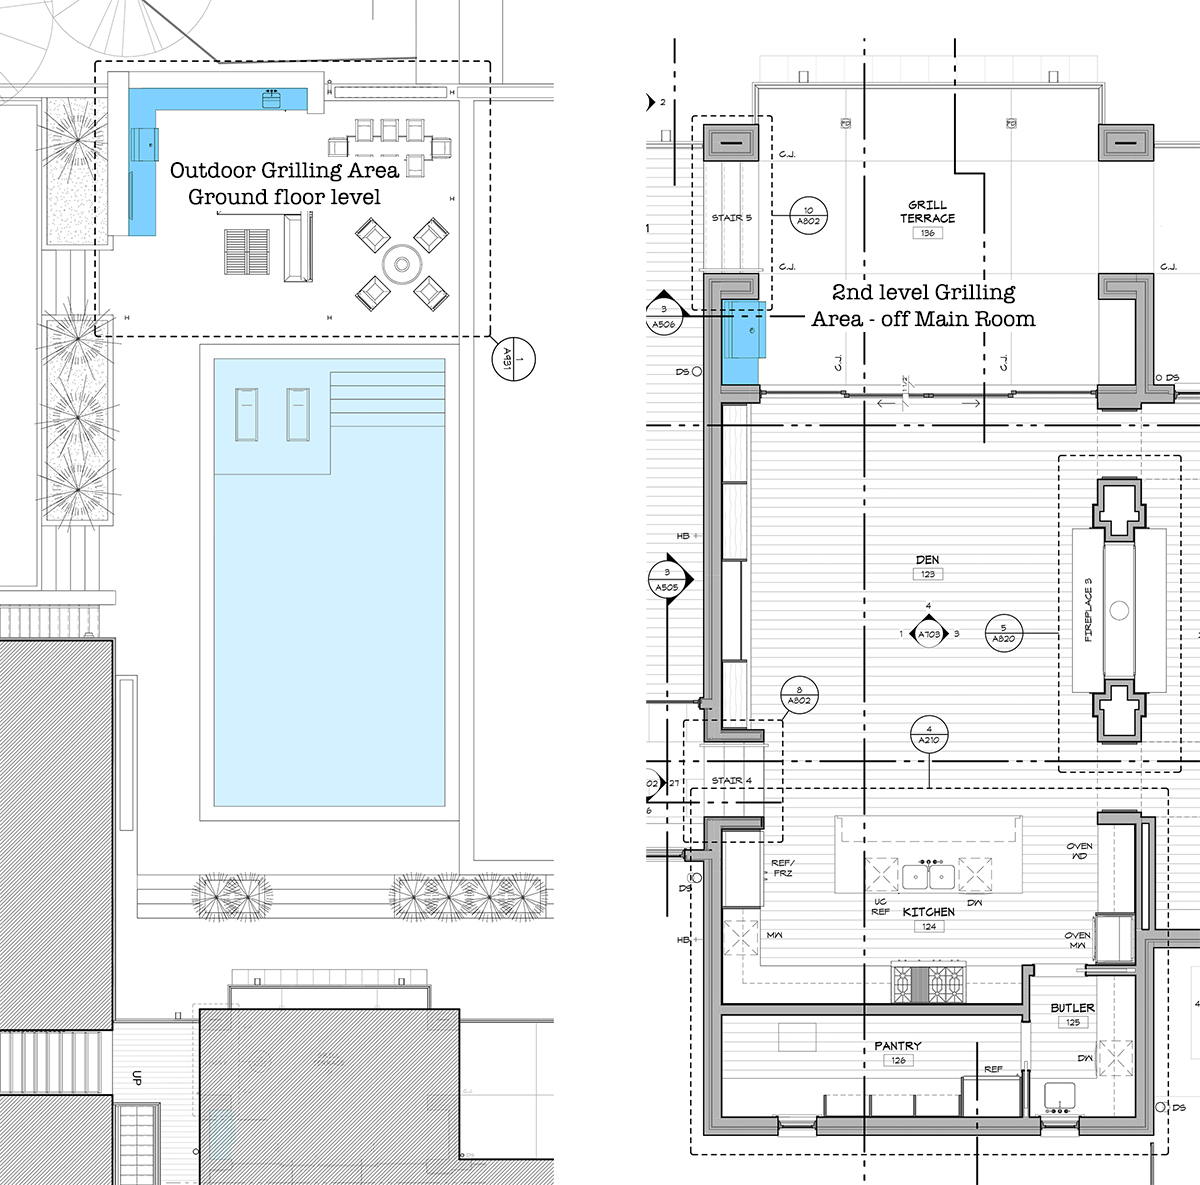 House plan with outdoor grill - by Dallas Architect Bob Borson